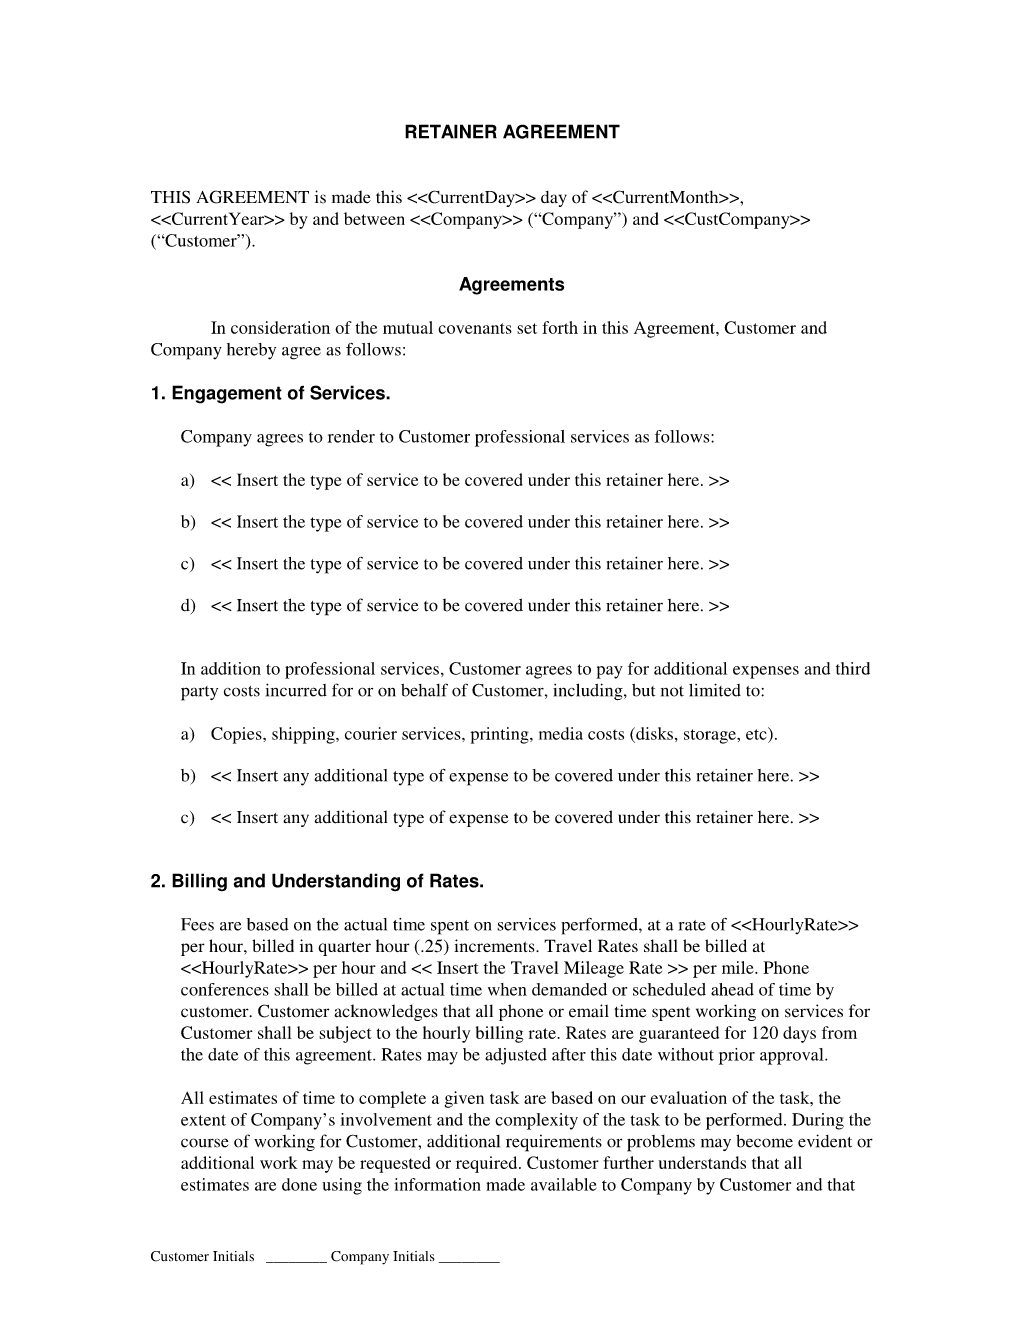 legal document example | Papillon northwan